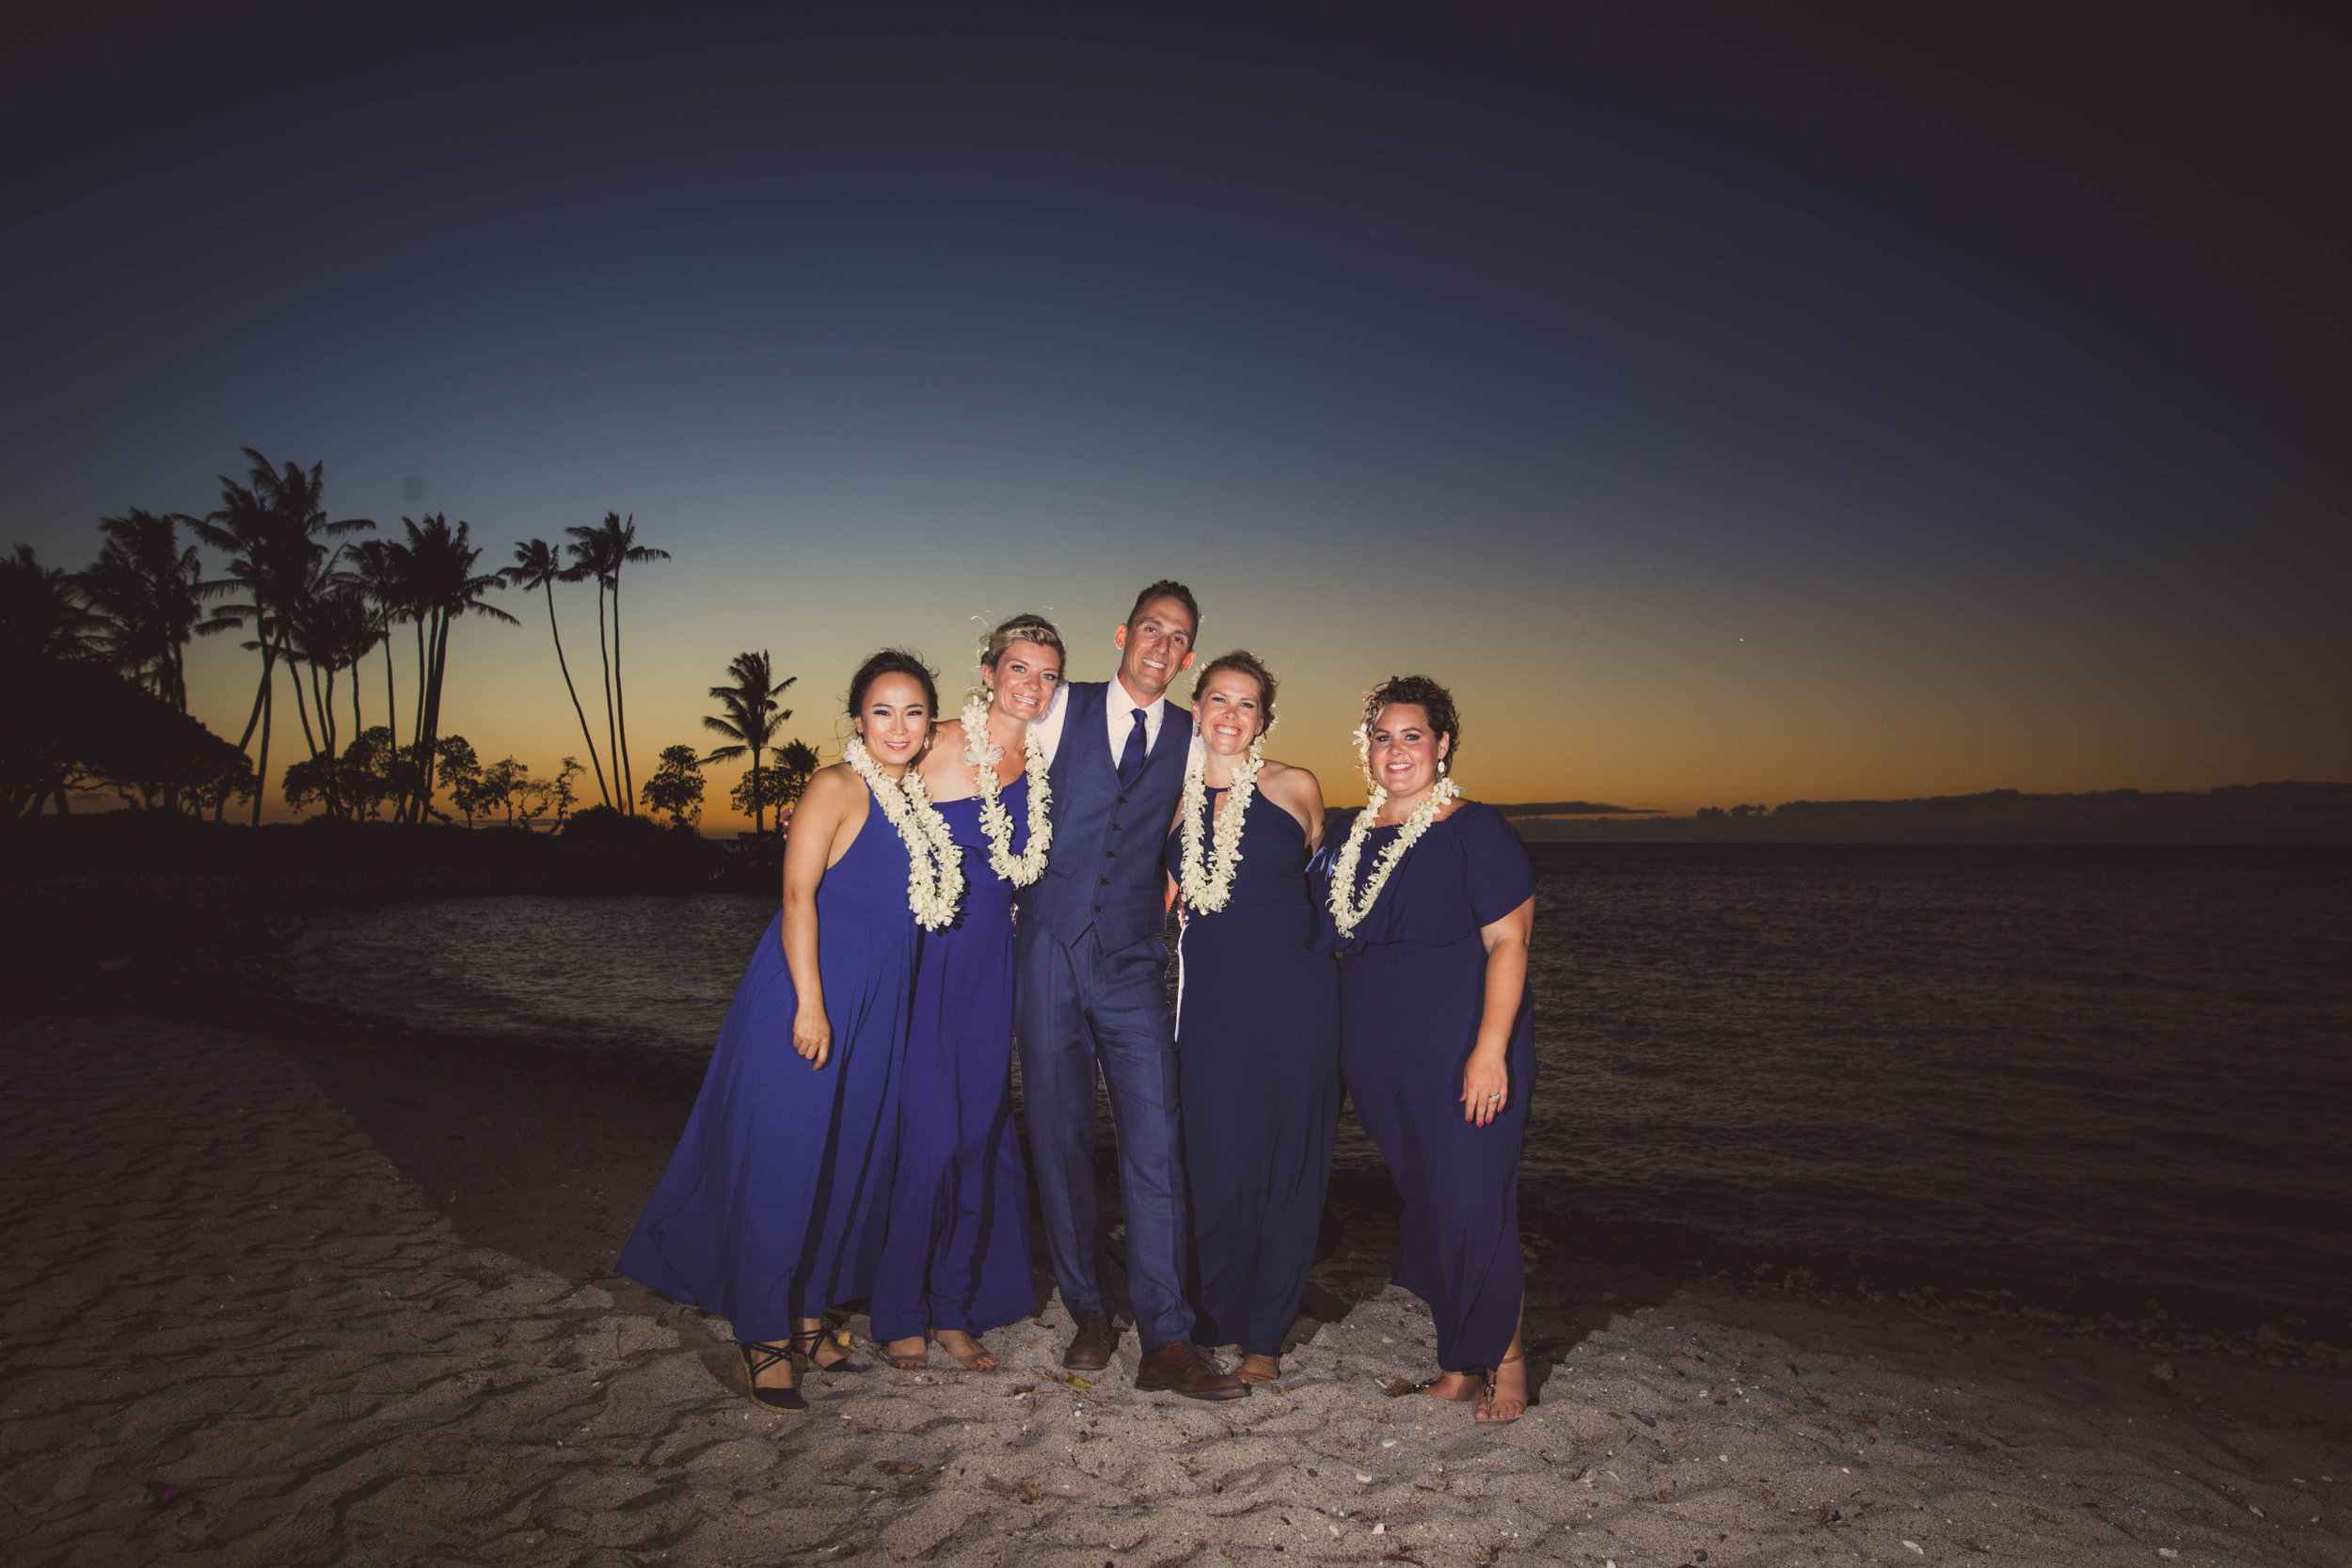 big island hawaii fairmont orchid beach wedding © kelilina photography 20170812190125-1.jpg